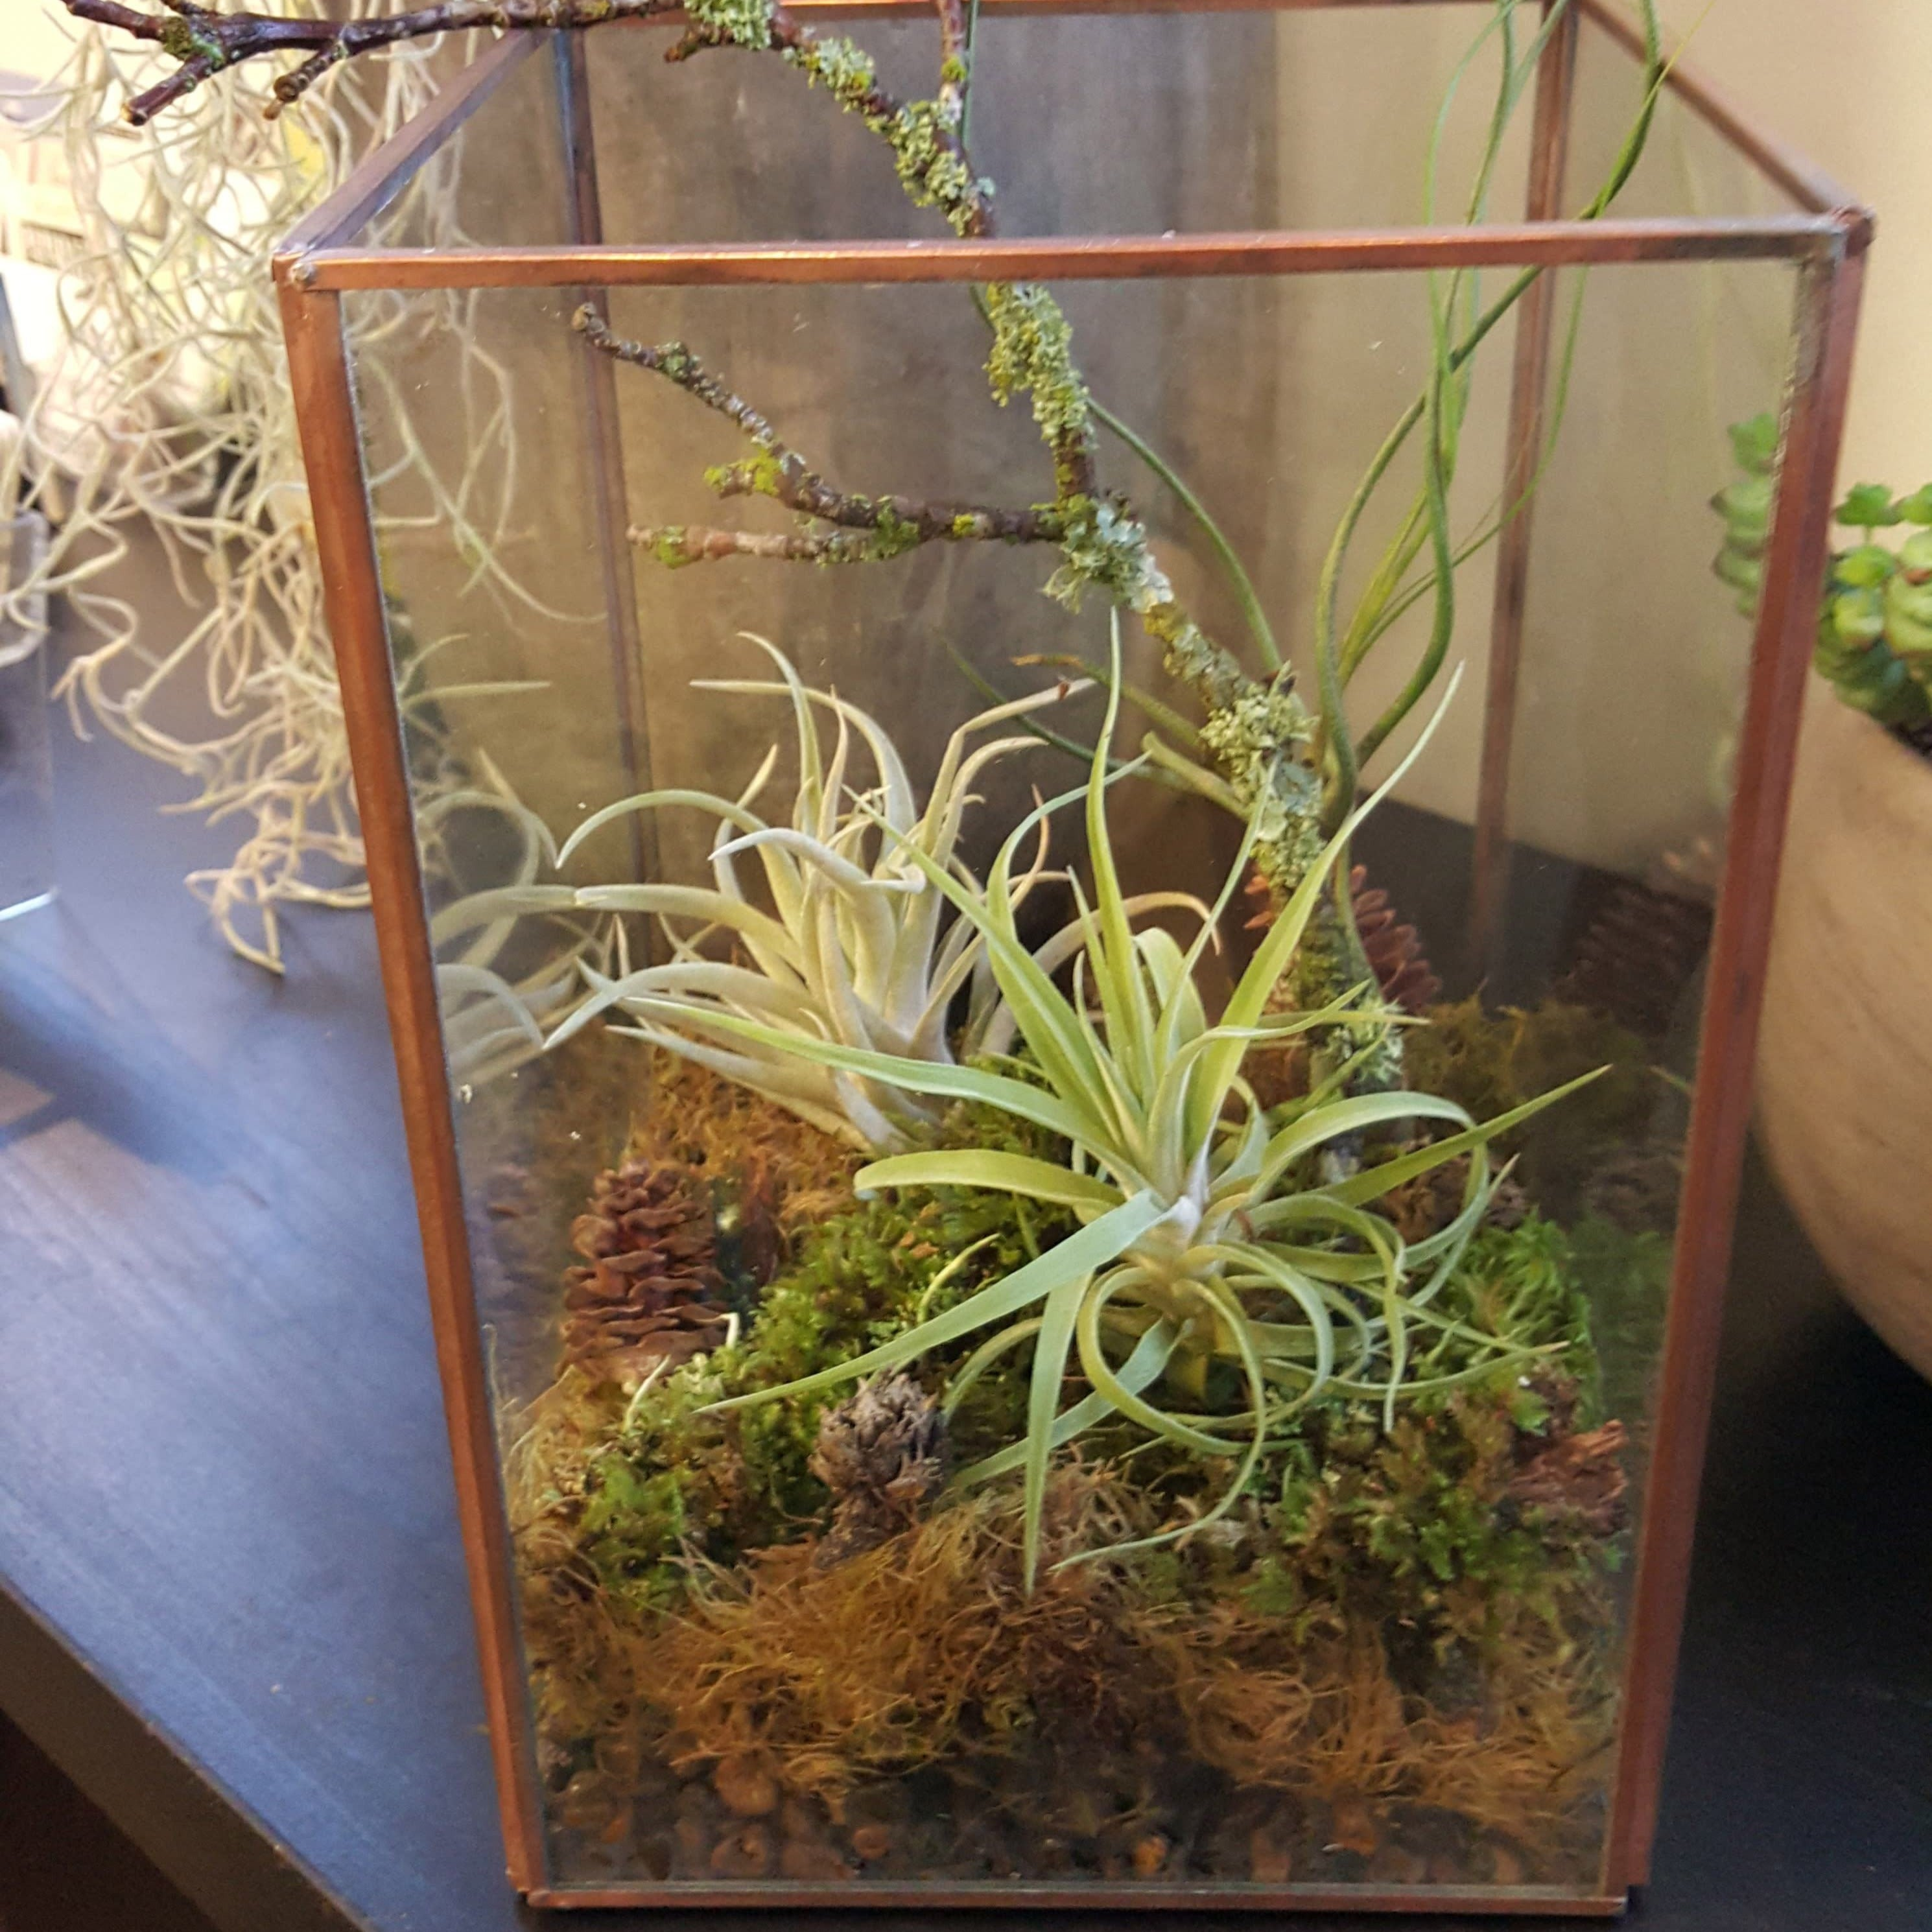 Air Plant Terrarium - Daily floral delivery from Botanica Floral Design